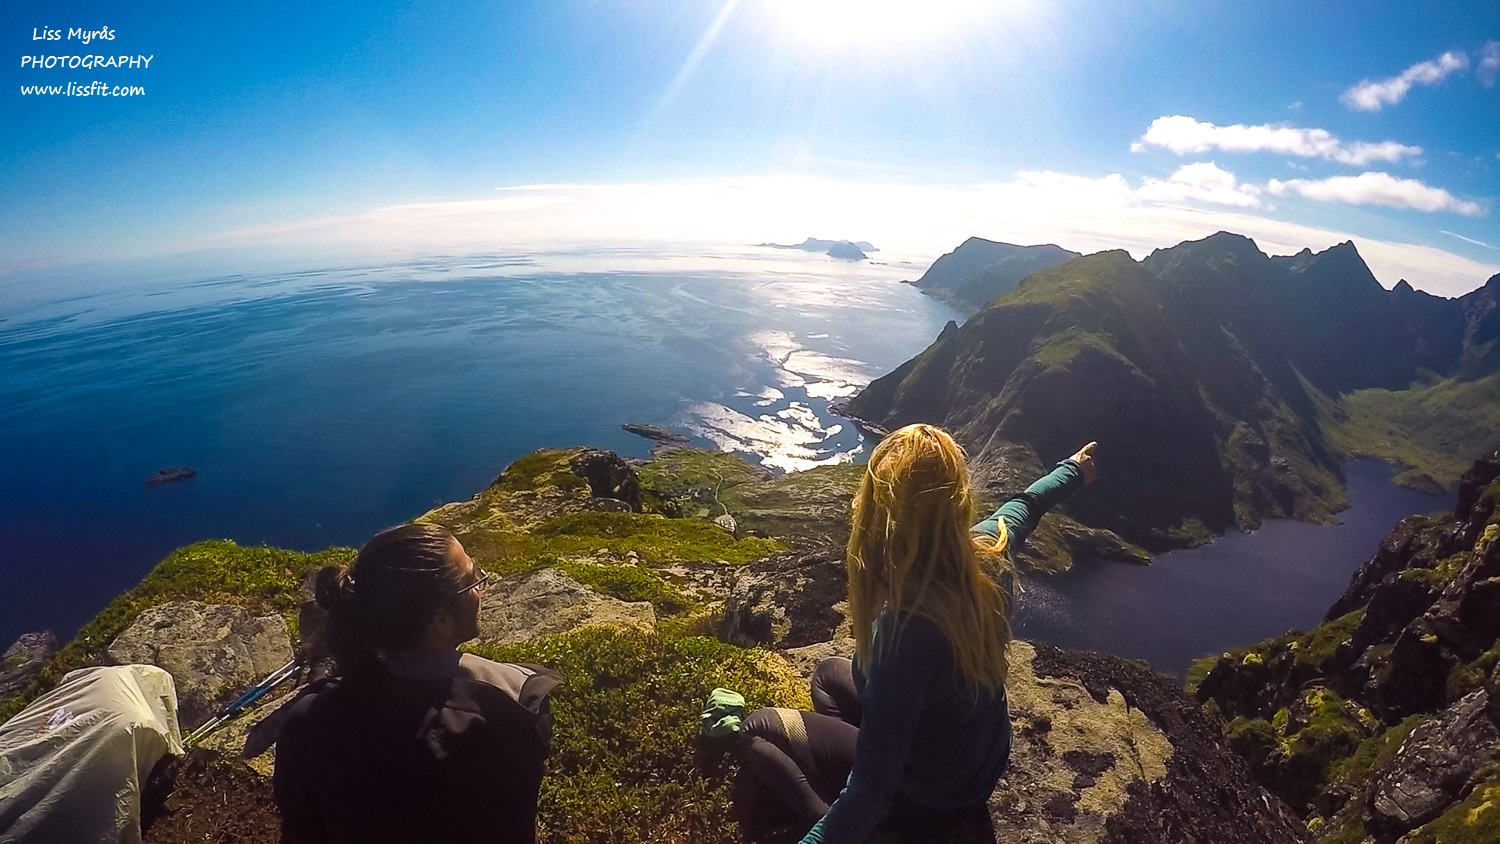 Tindstinden hiking adventure Lofoten travel Moskenes trail lake view point mountains landscape photography GoPro